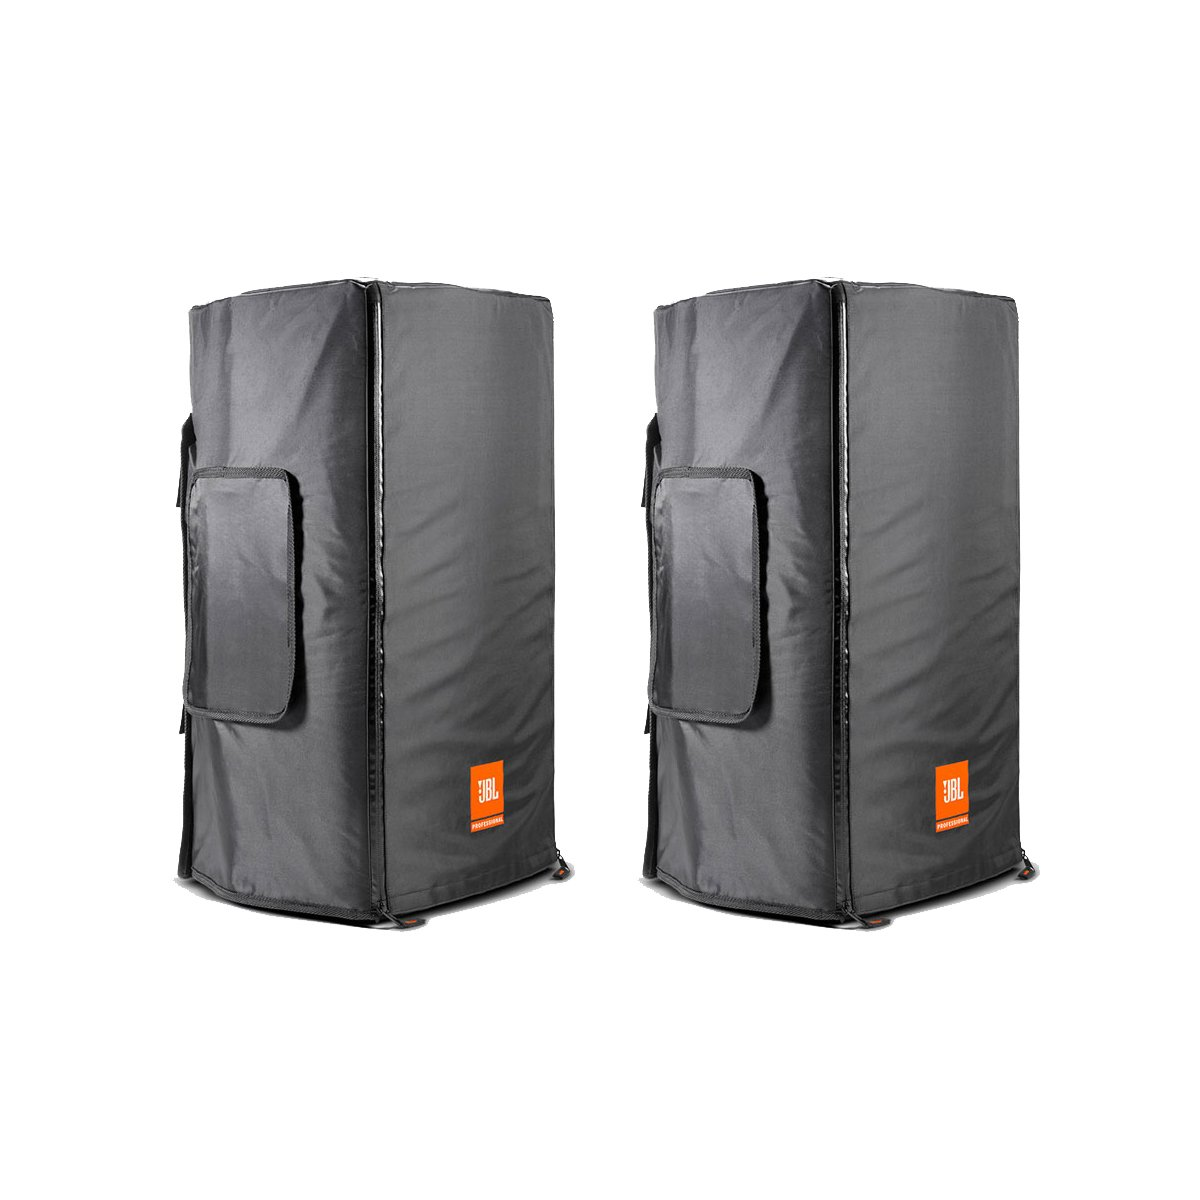 JBL EON615-CVR-WX Convertible Speaker Cover Pair for JBL EON615